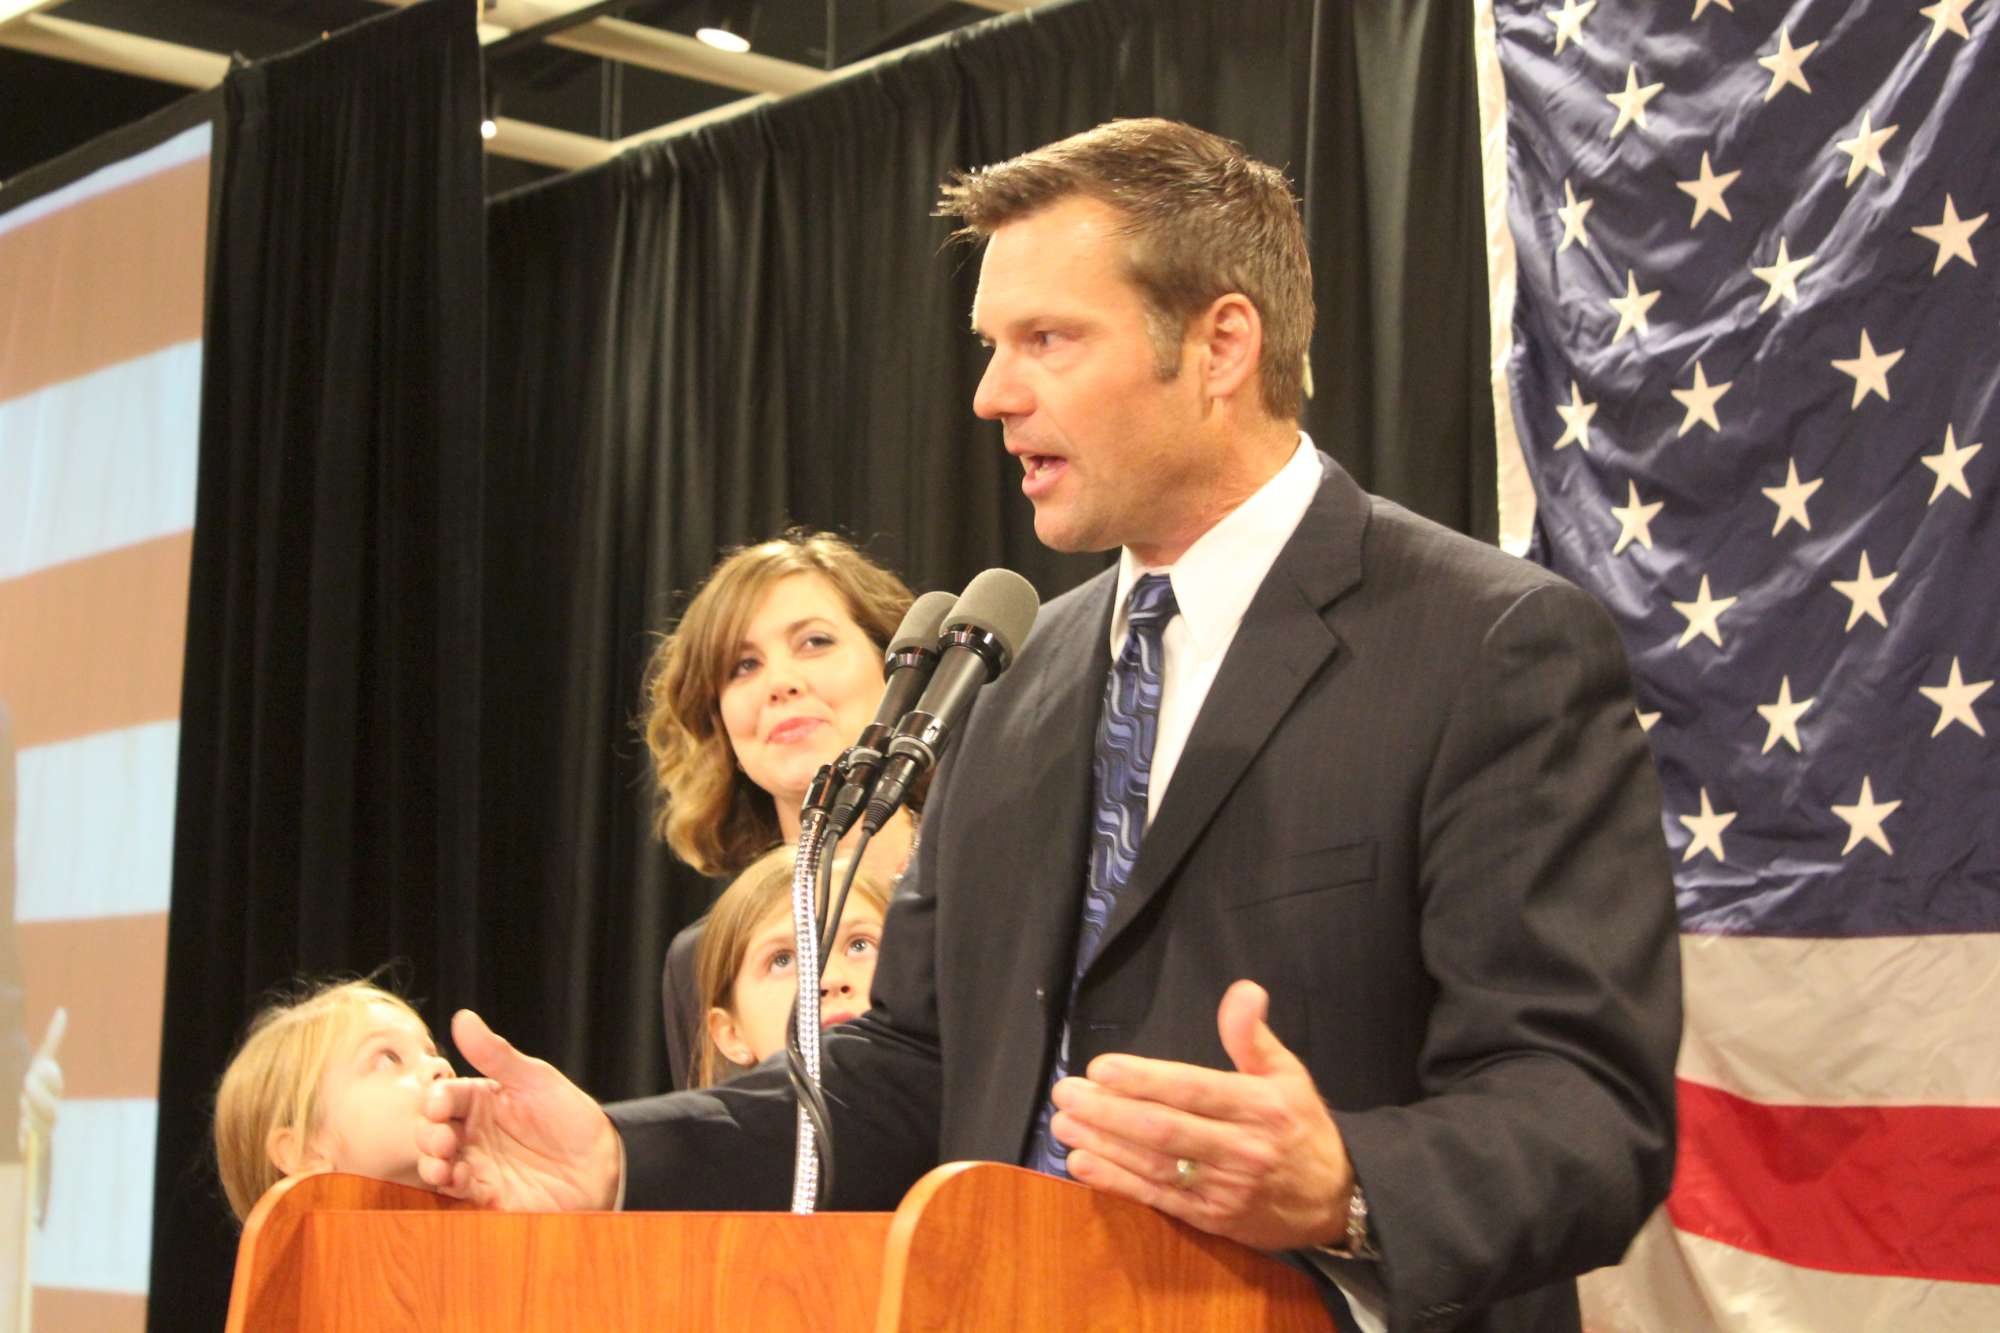 Kris Kobach speaking last year. (Photo by Stephen Koranda)